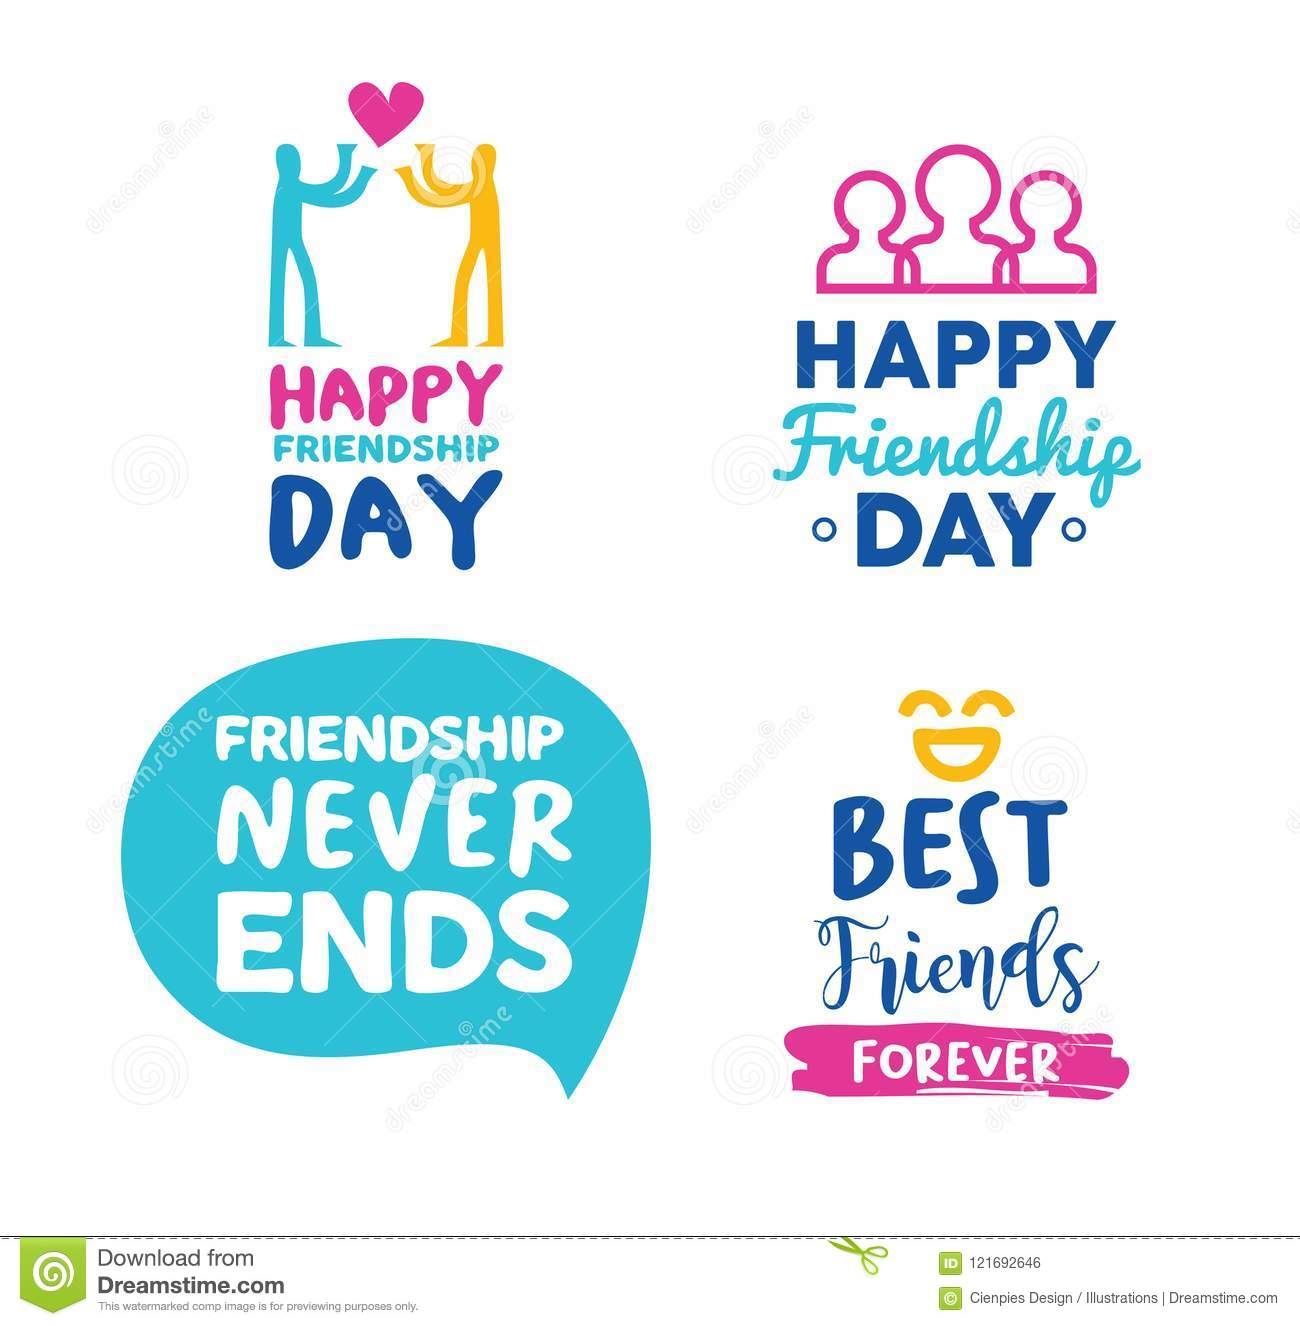 Image of: Sayings Happy Friendship Day Friend Typography Quote Set New Year Wishes 2019 Happy Friendship Day Friend Typography Quote Set Stock Vector